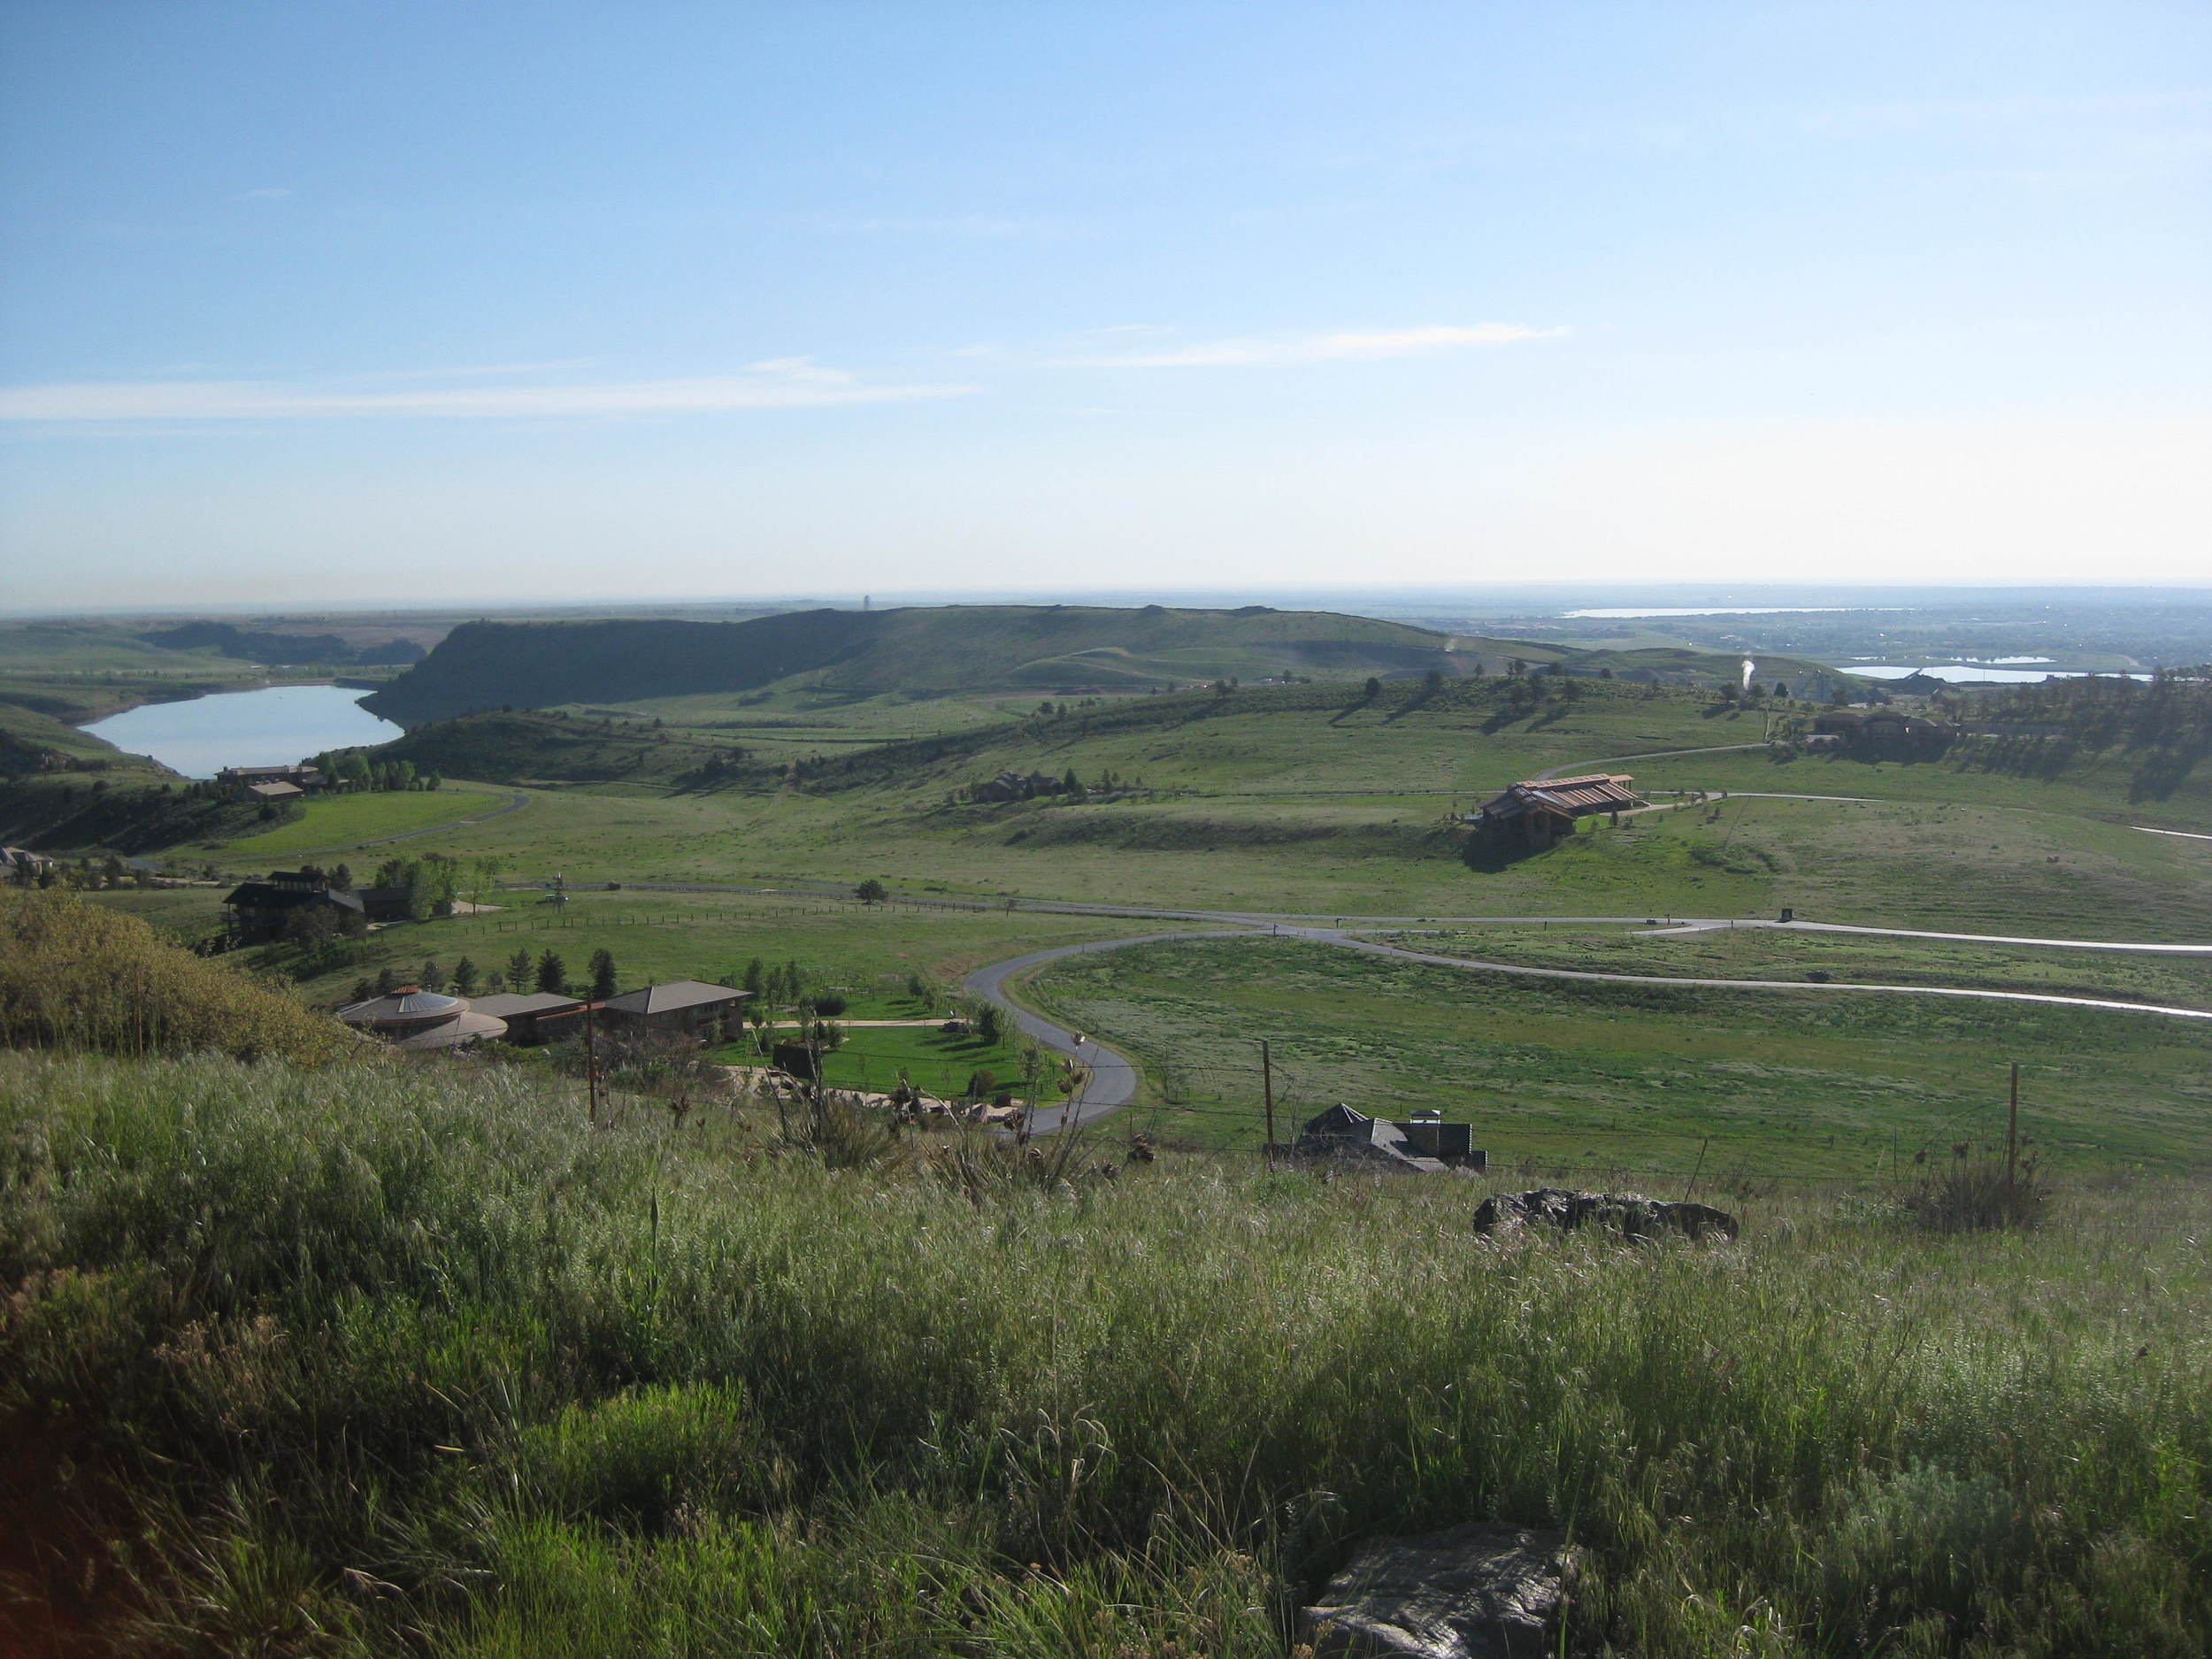 """TAKEN ON THE CLIMB AT WHITE RANCH. """"From up here, those people look like ants. Ants next to enormous houses."""""""